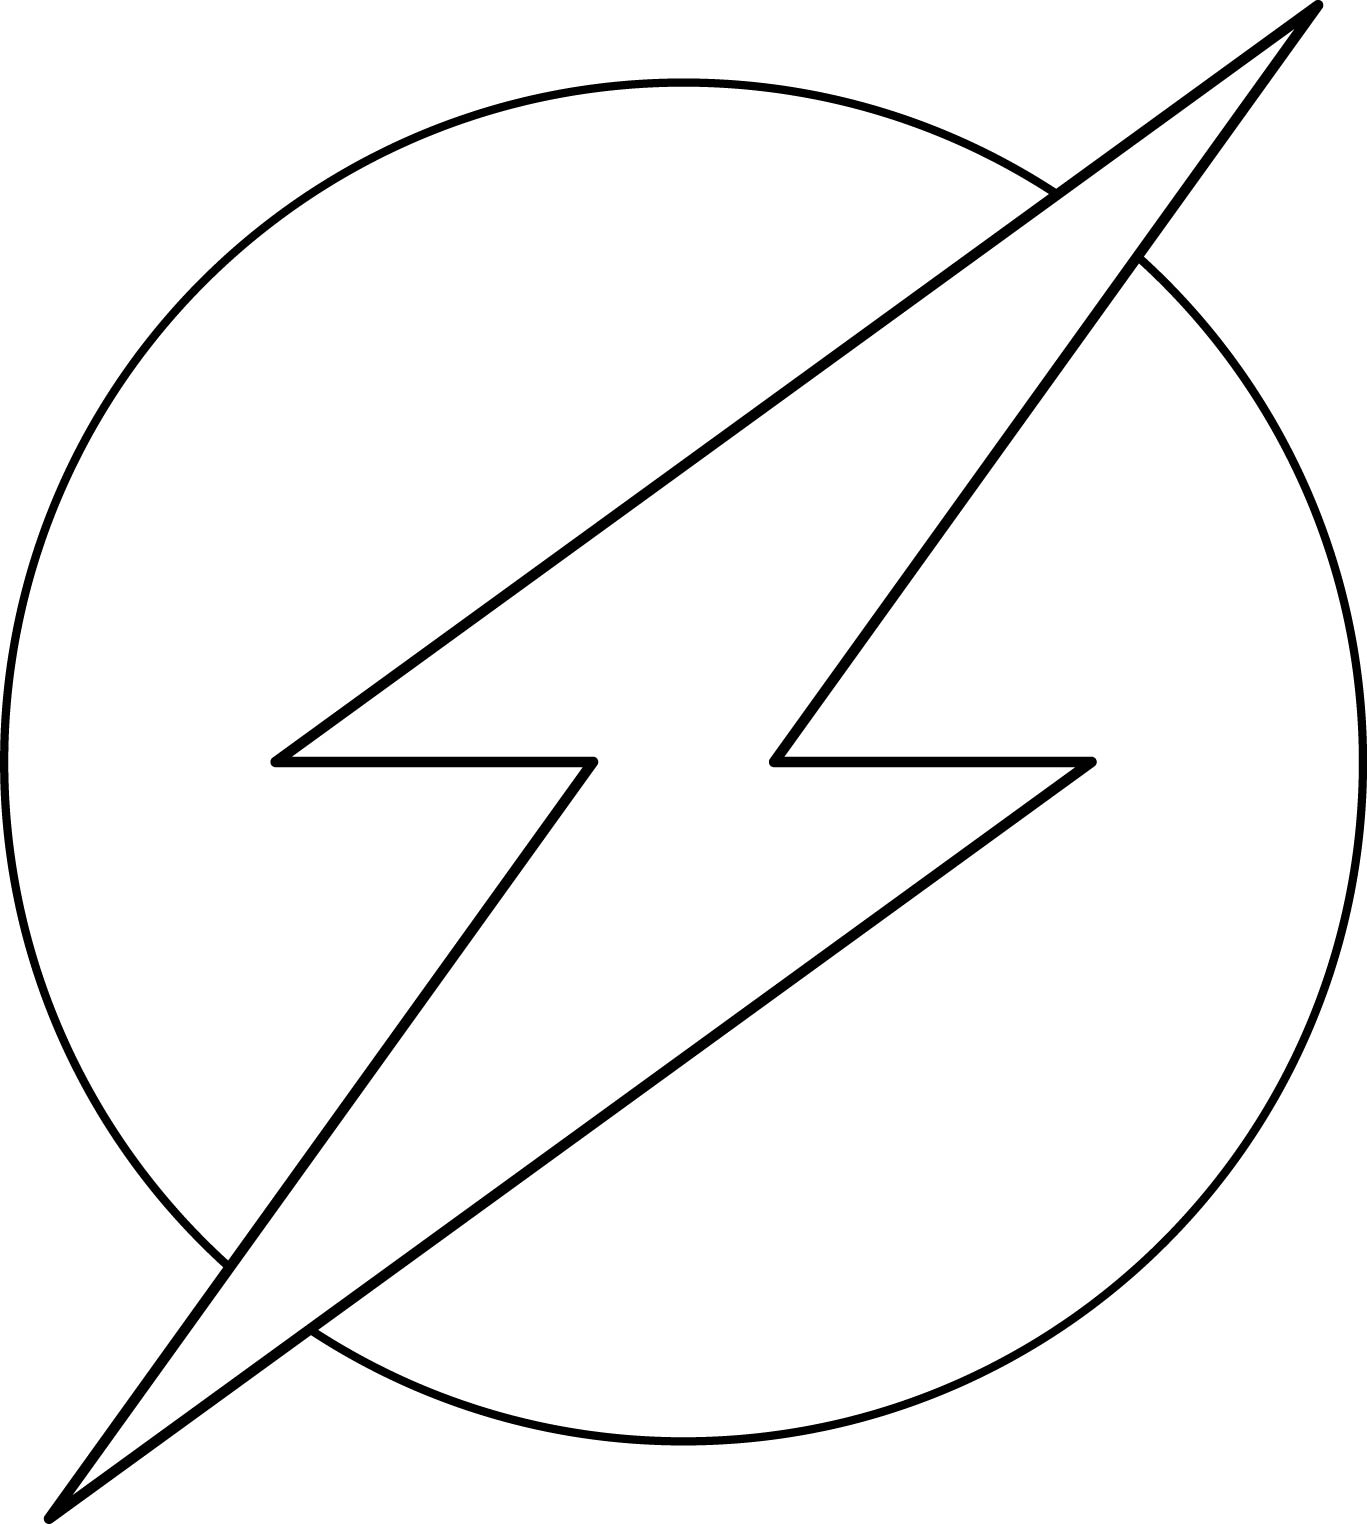 1367x1524 The Flash Superhero Logo. Add Another Outer Circle And You'Re Good